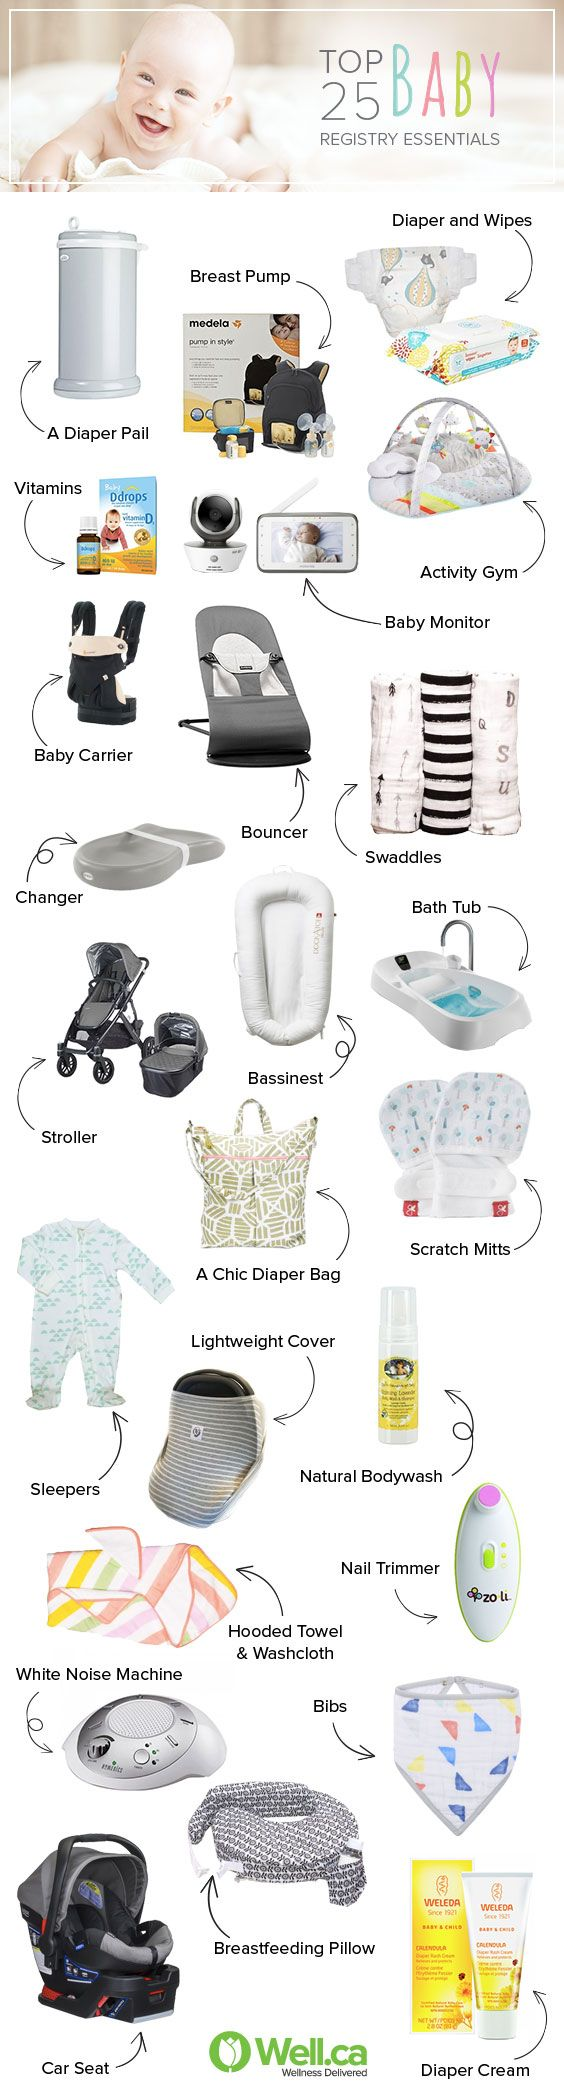 Whether you're expecting your first child or preparing for another little one, you'll want to check out our top Baby Registry picks below. Click...